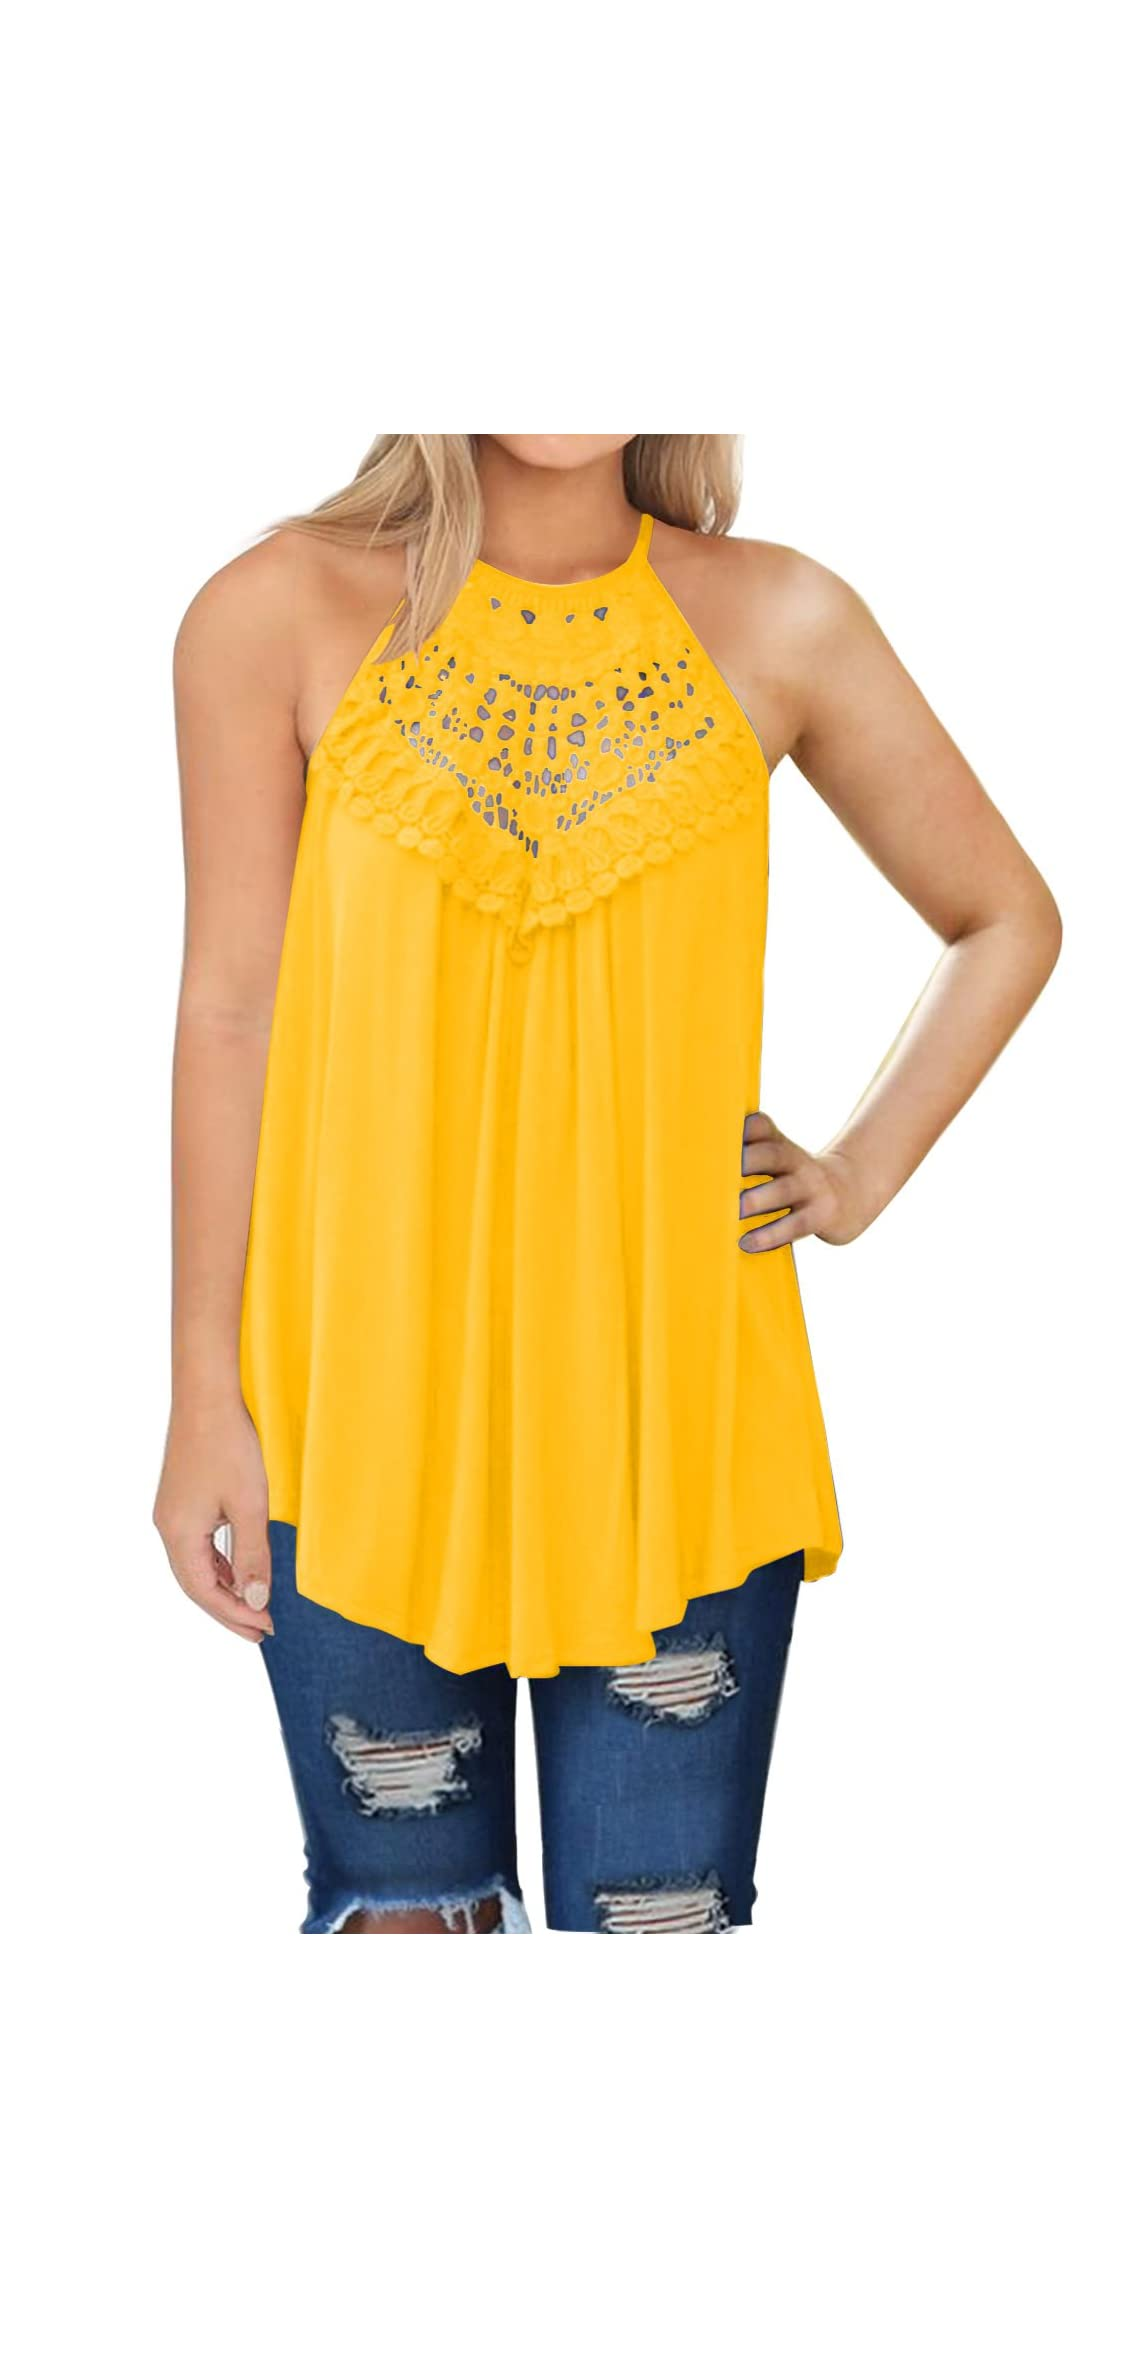 Womens Summer Casual Sleeveless Tops Lace Flowy Loose